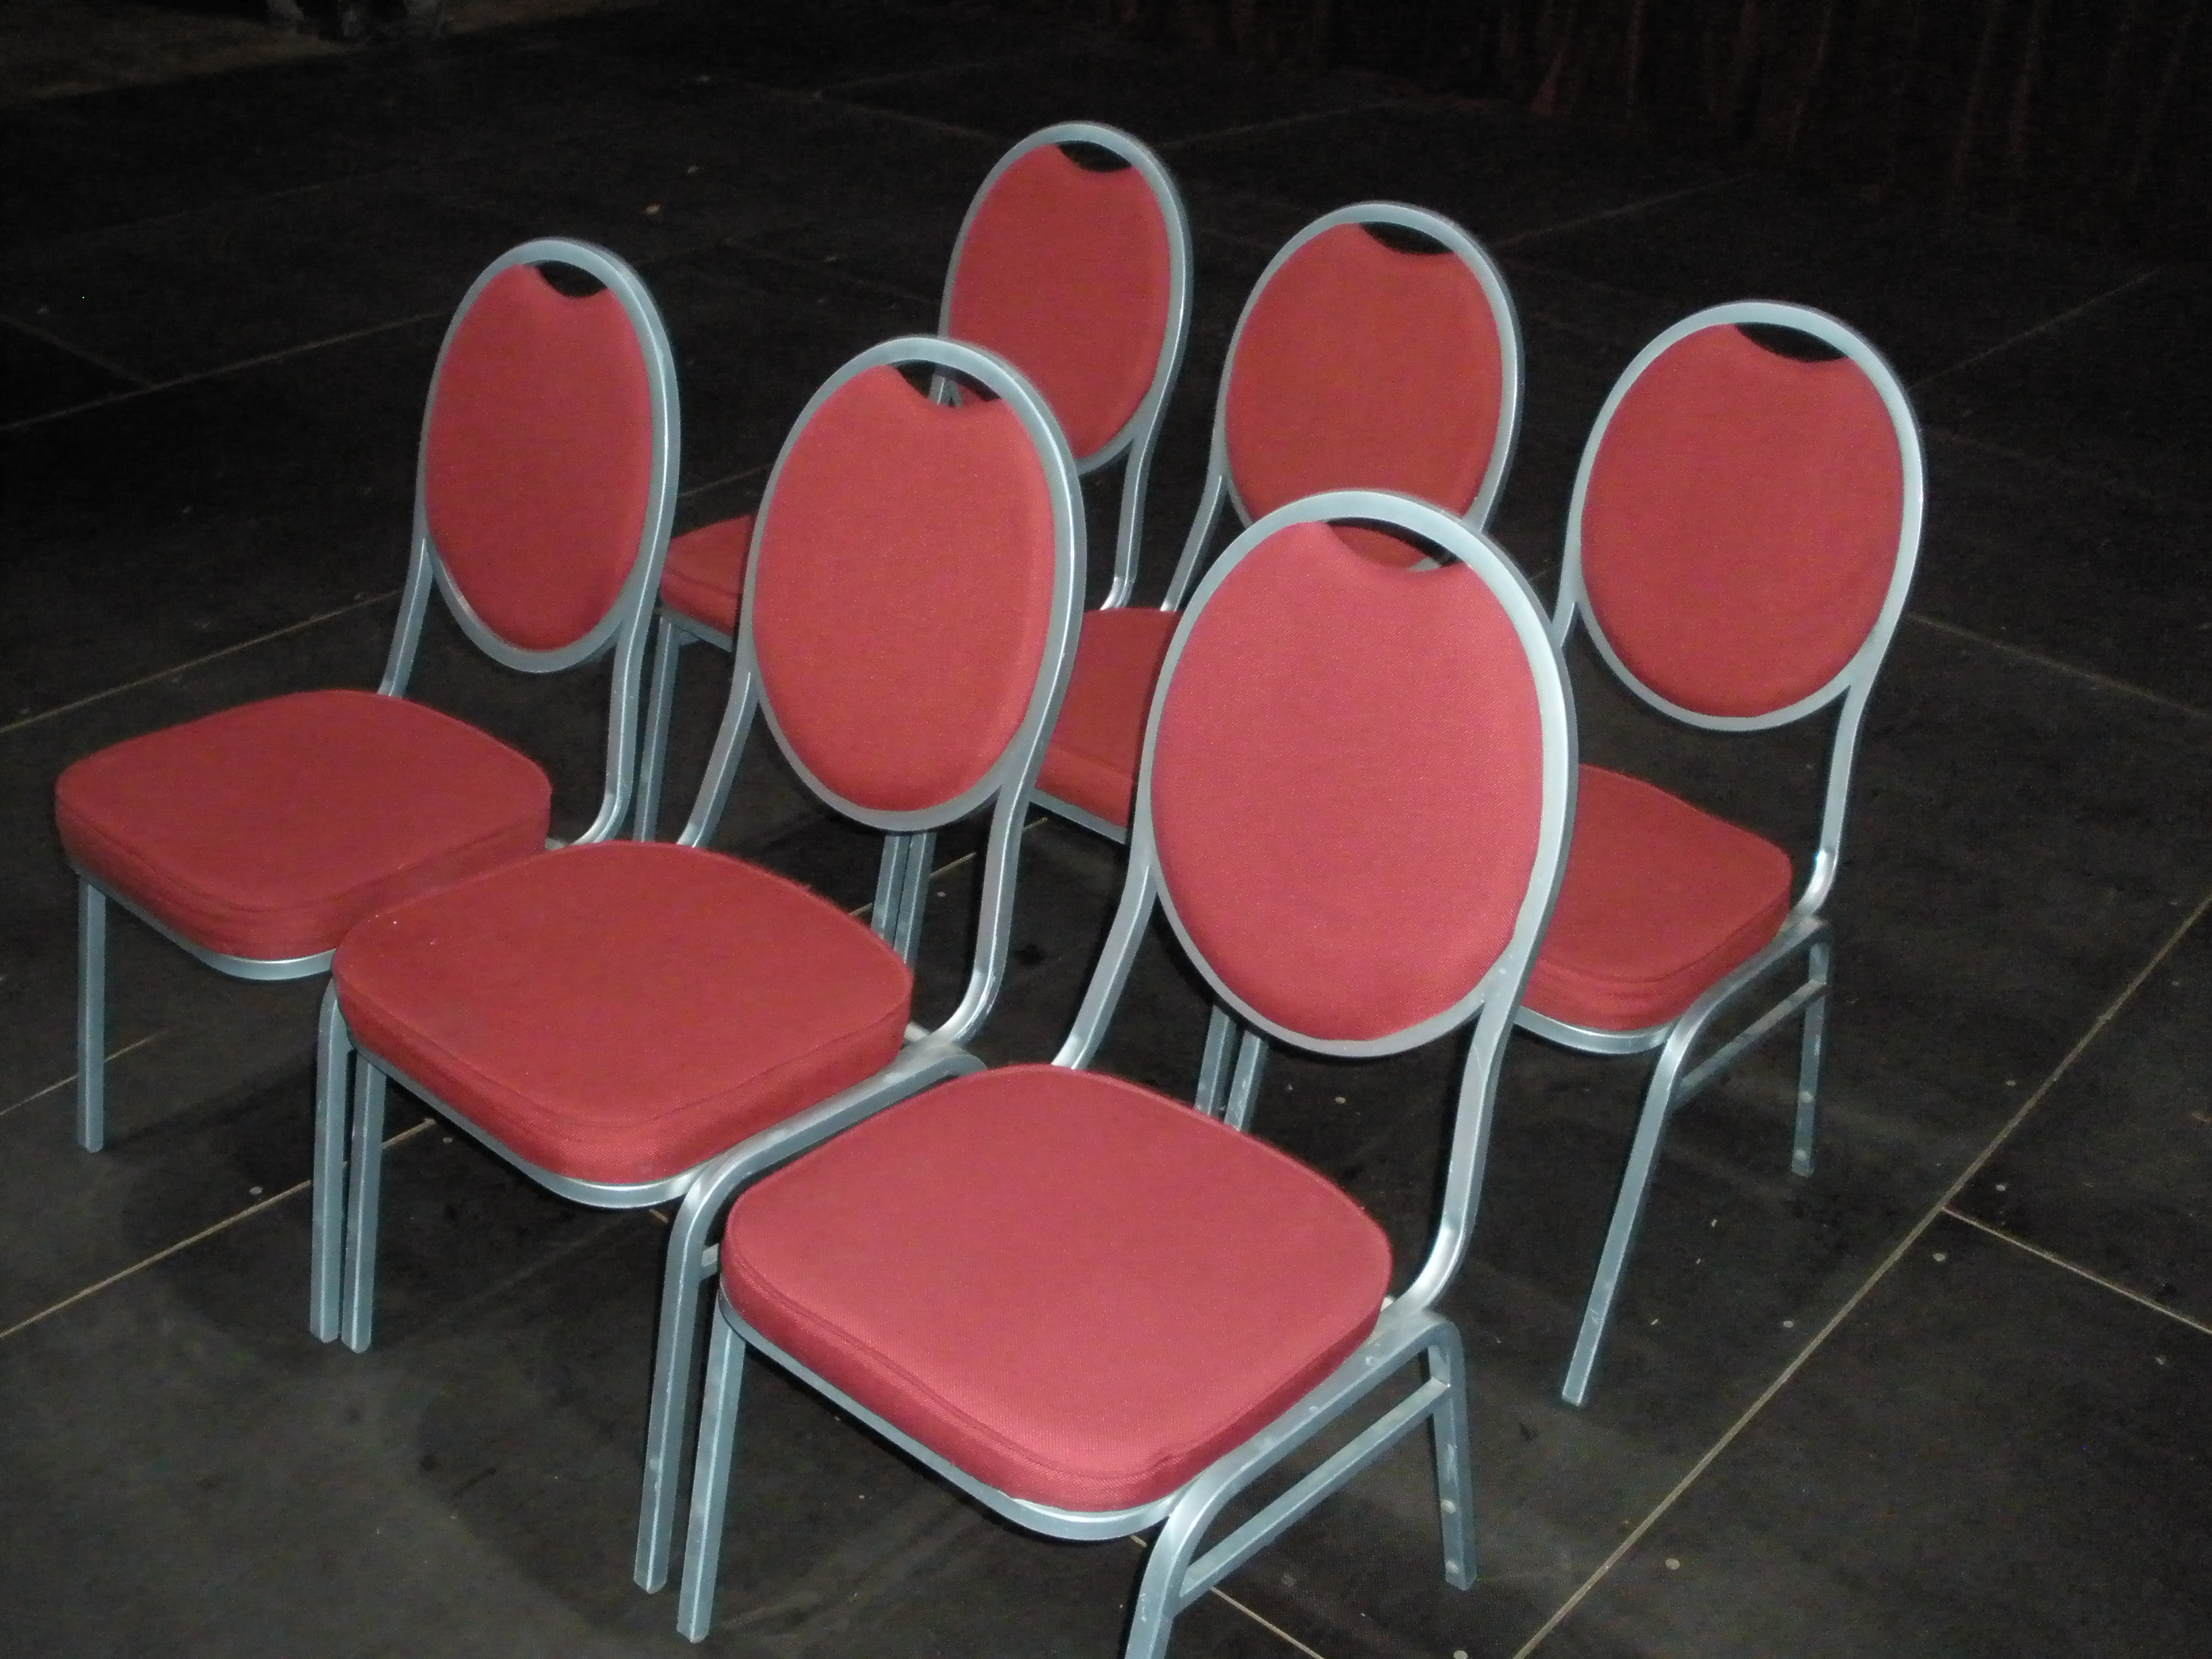 Circusevents Koeln padded chairs red